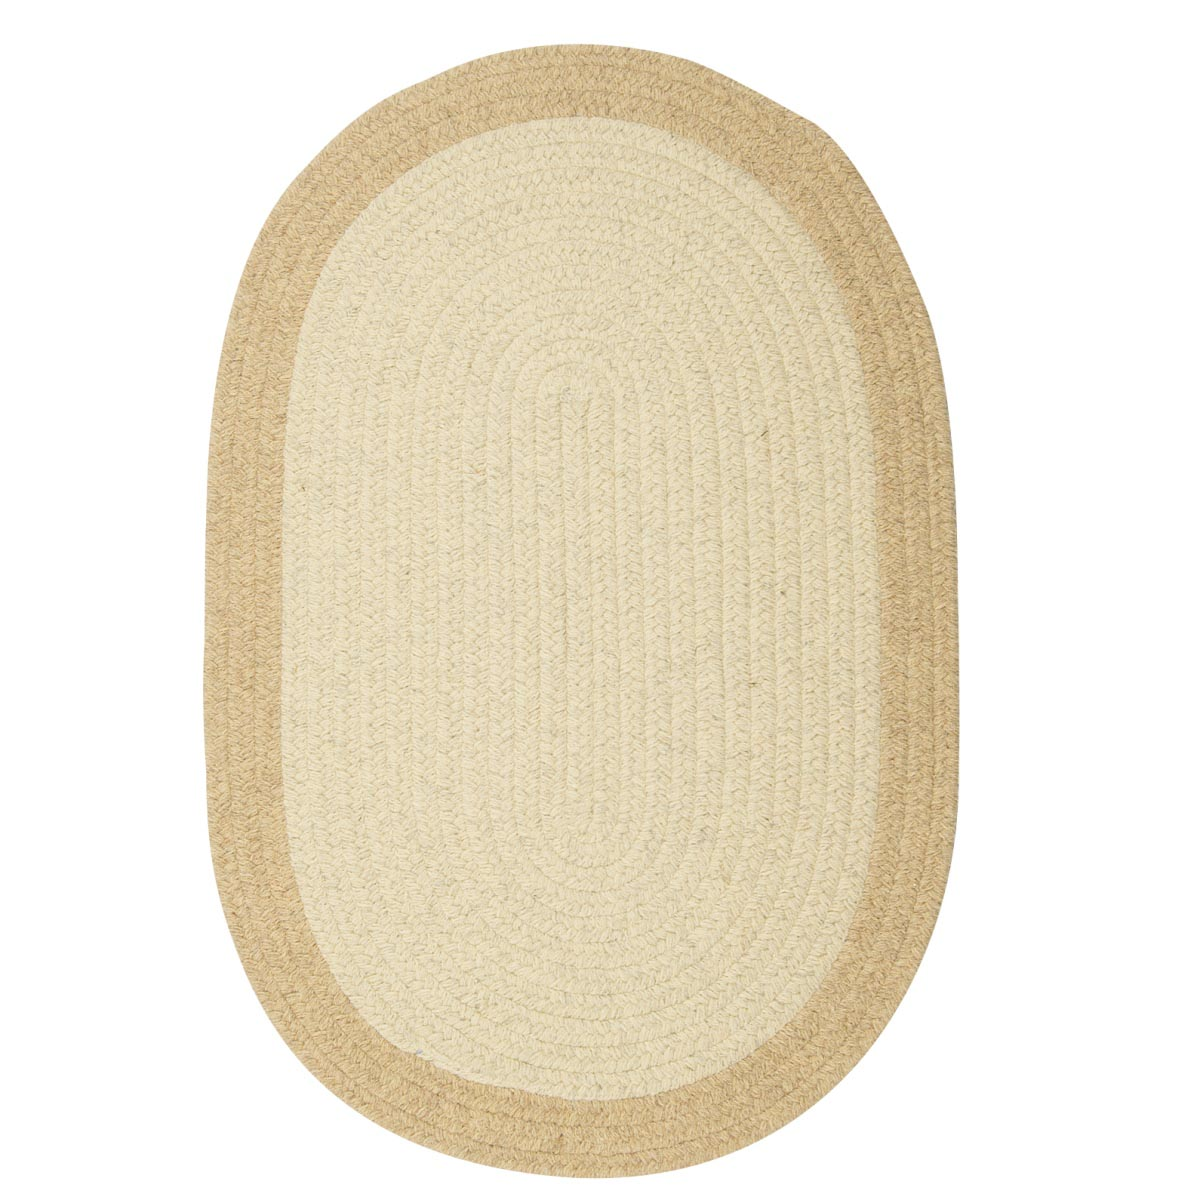 Hudson Natural Wool Braided Oval Rugs